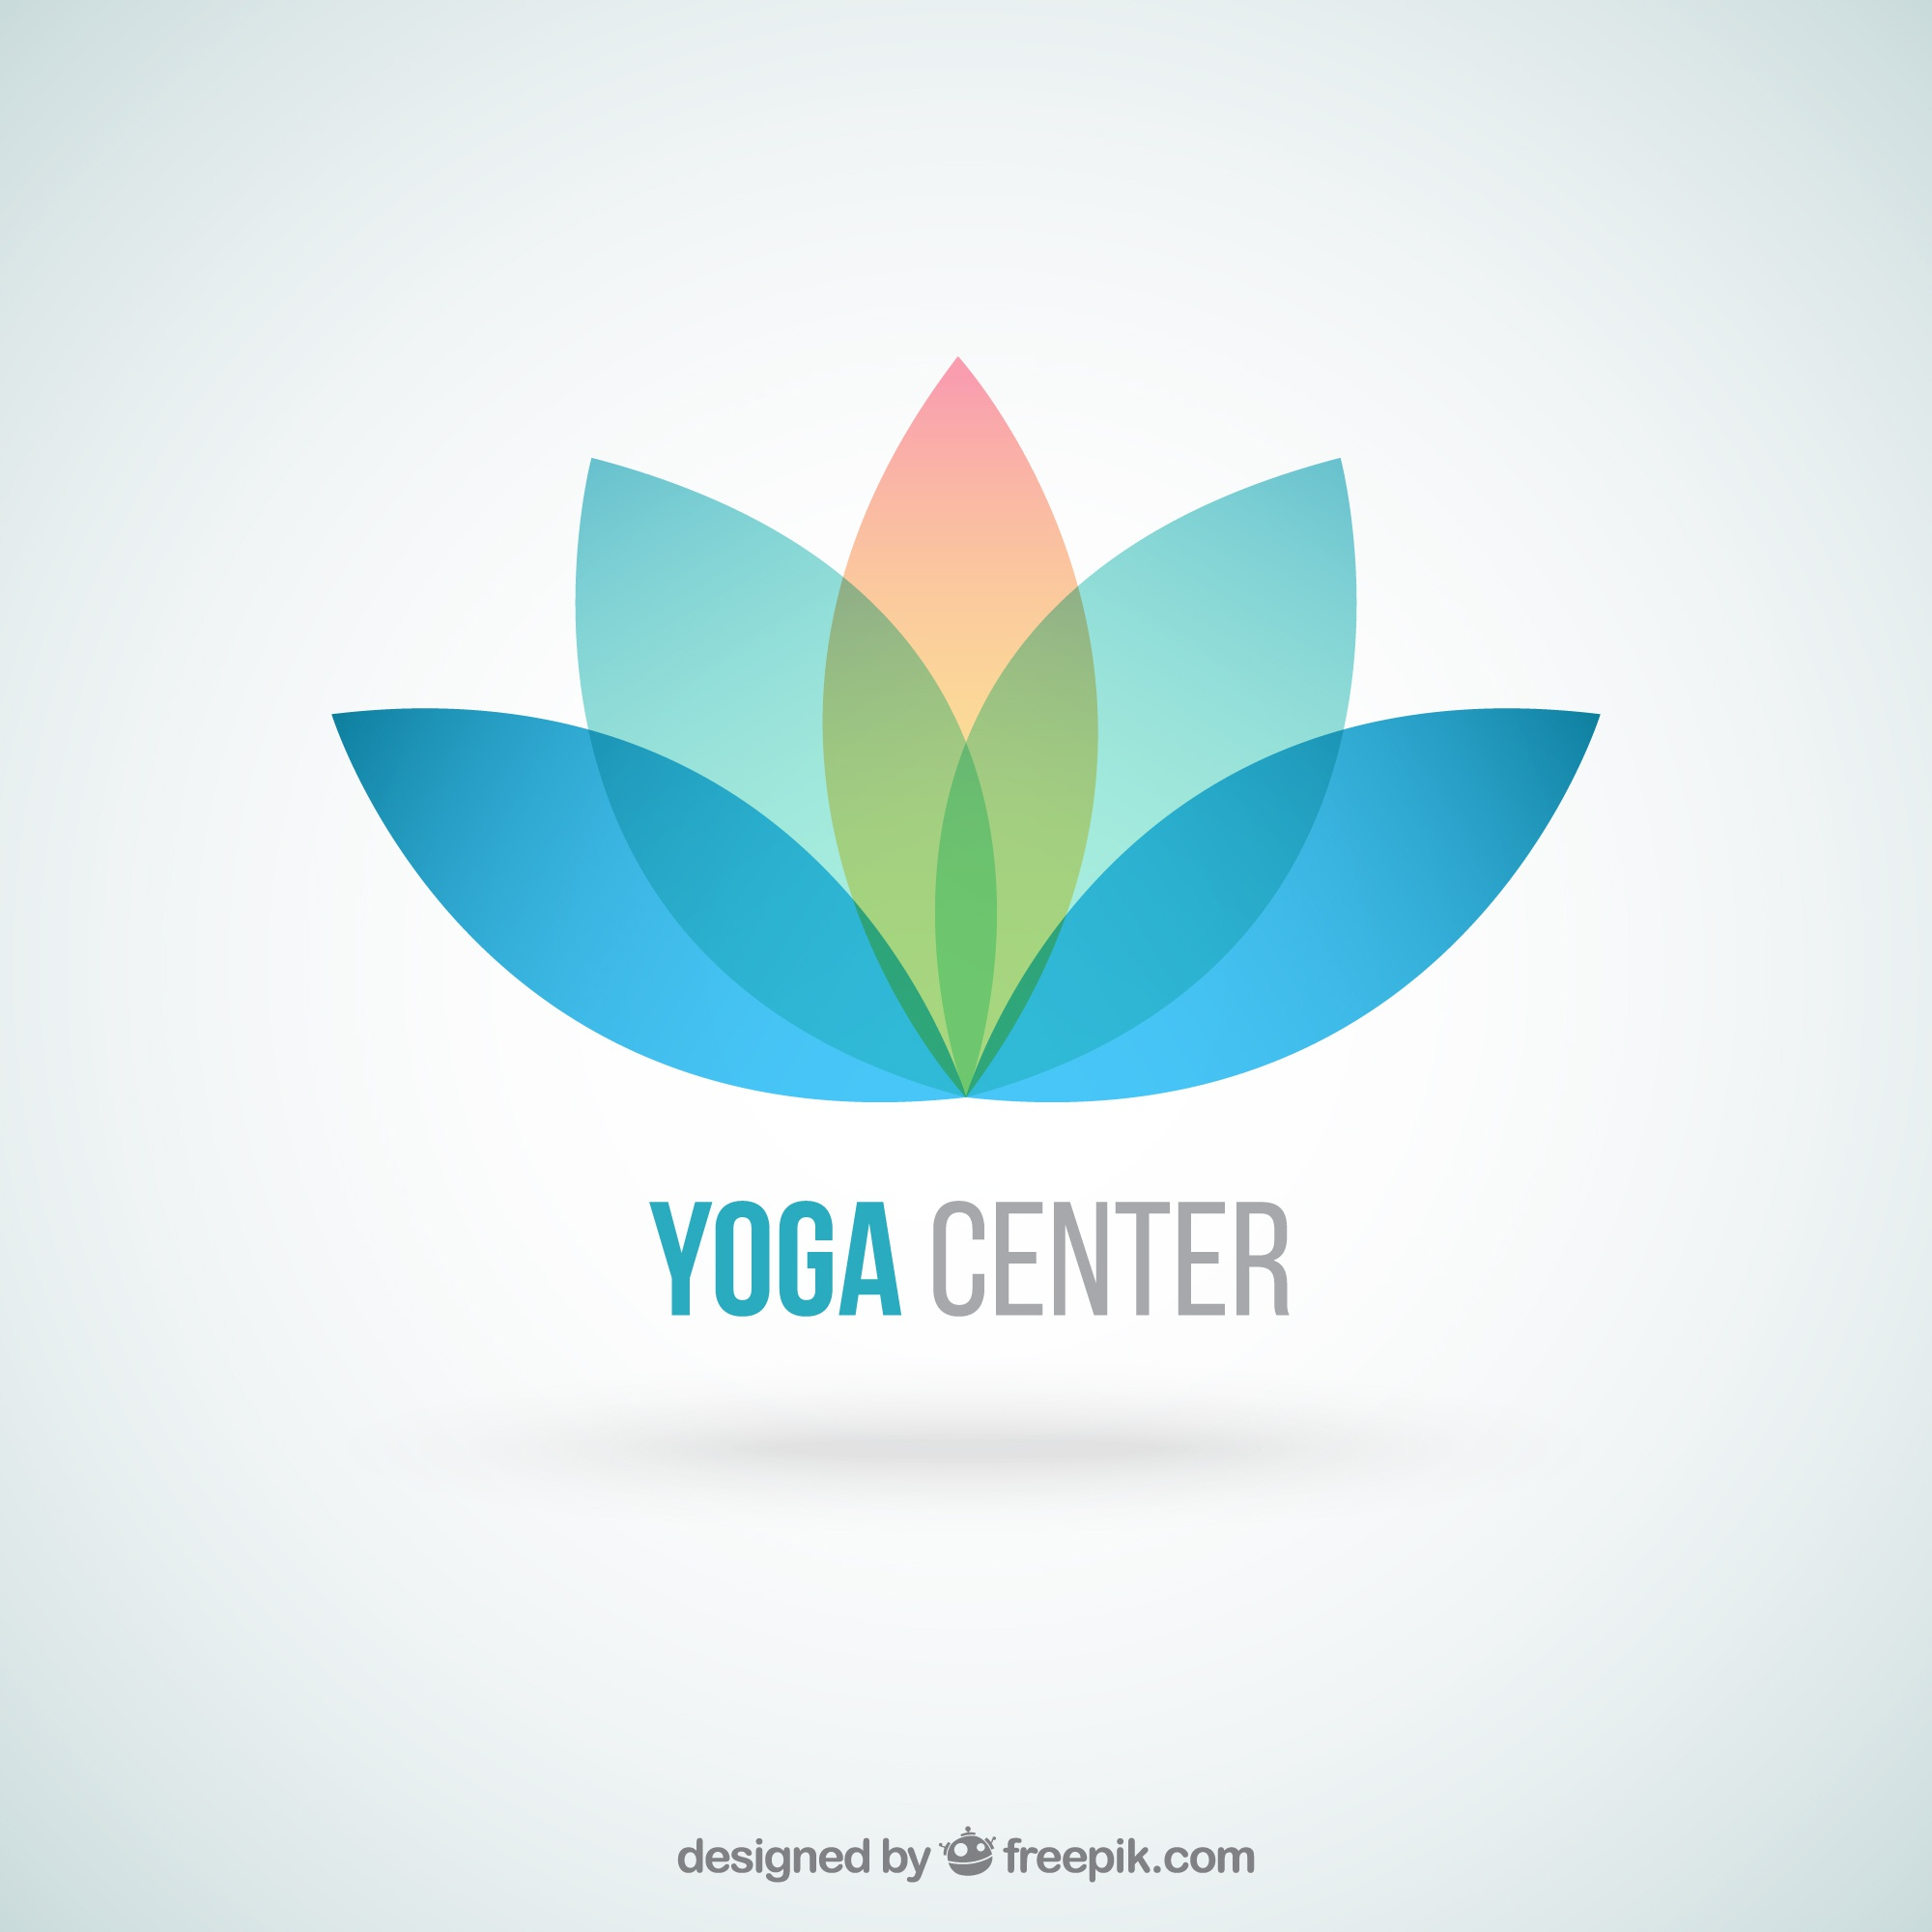 Centre de yoga logo